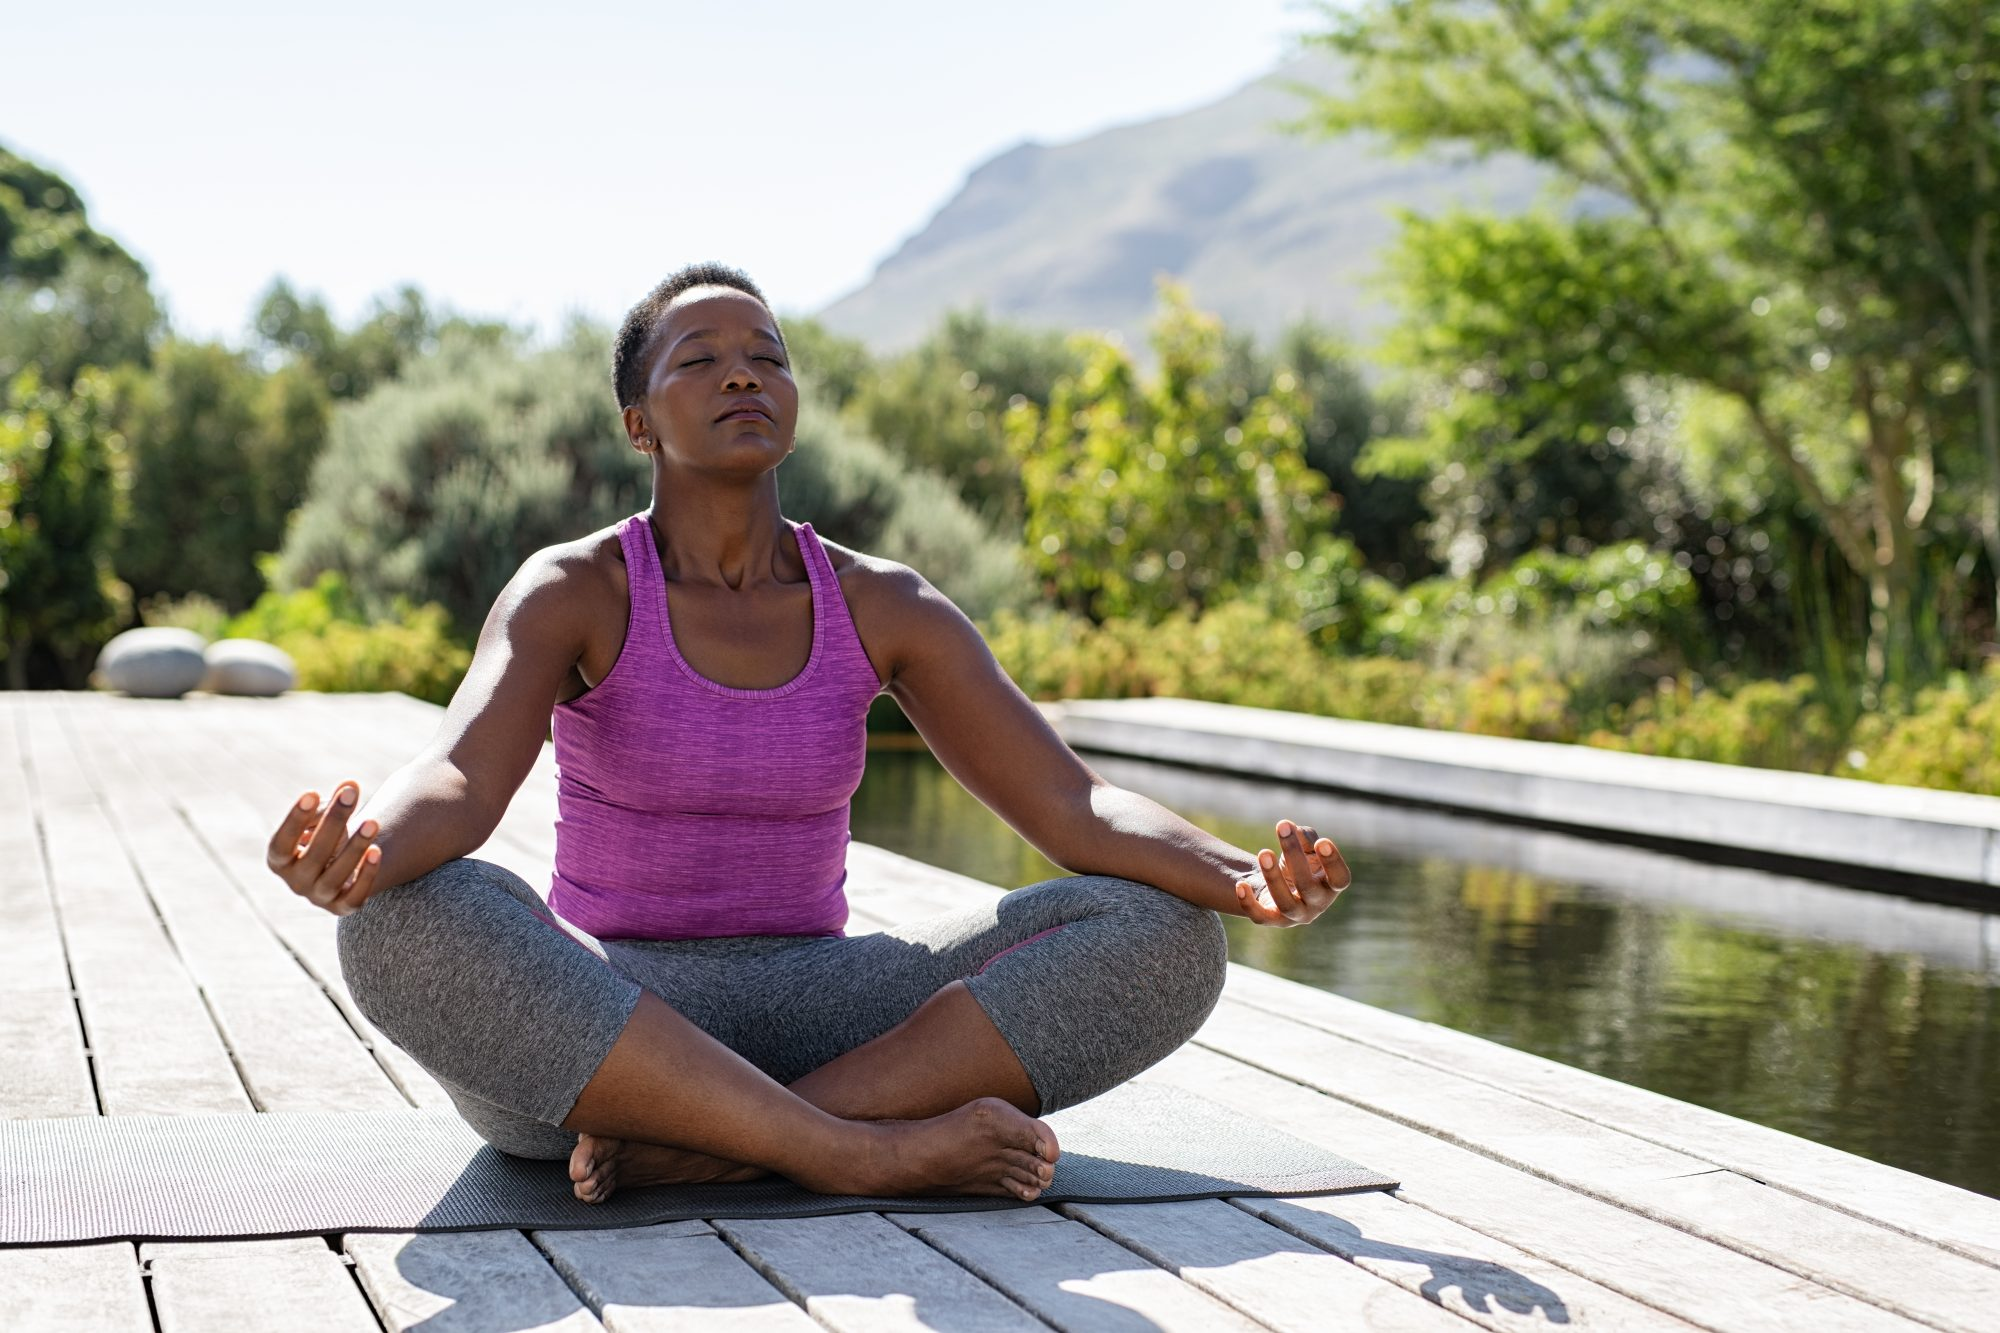 woman practicing yoga outdoors on deck